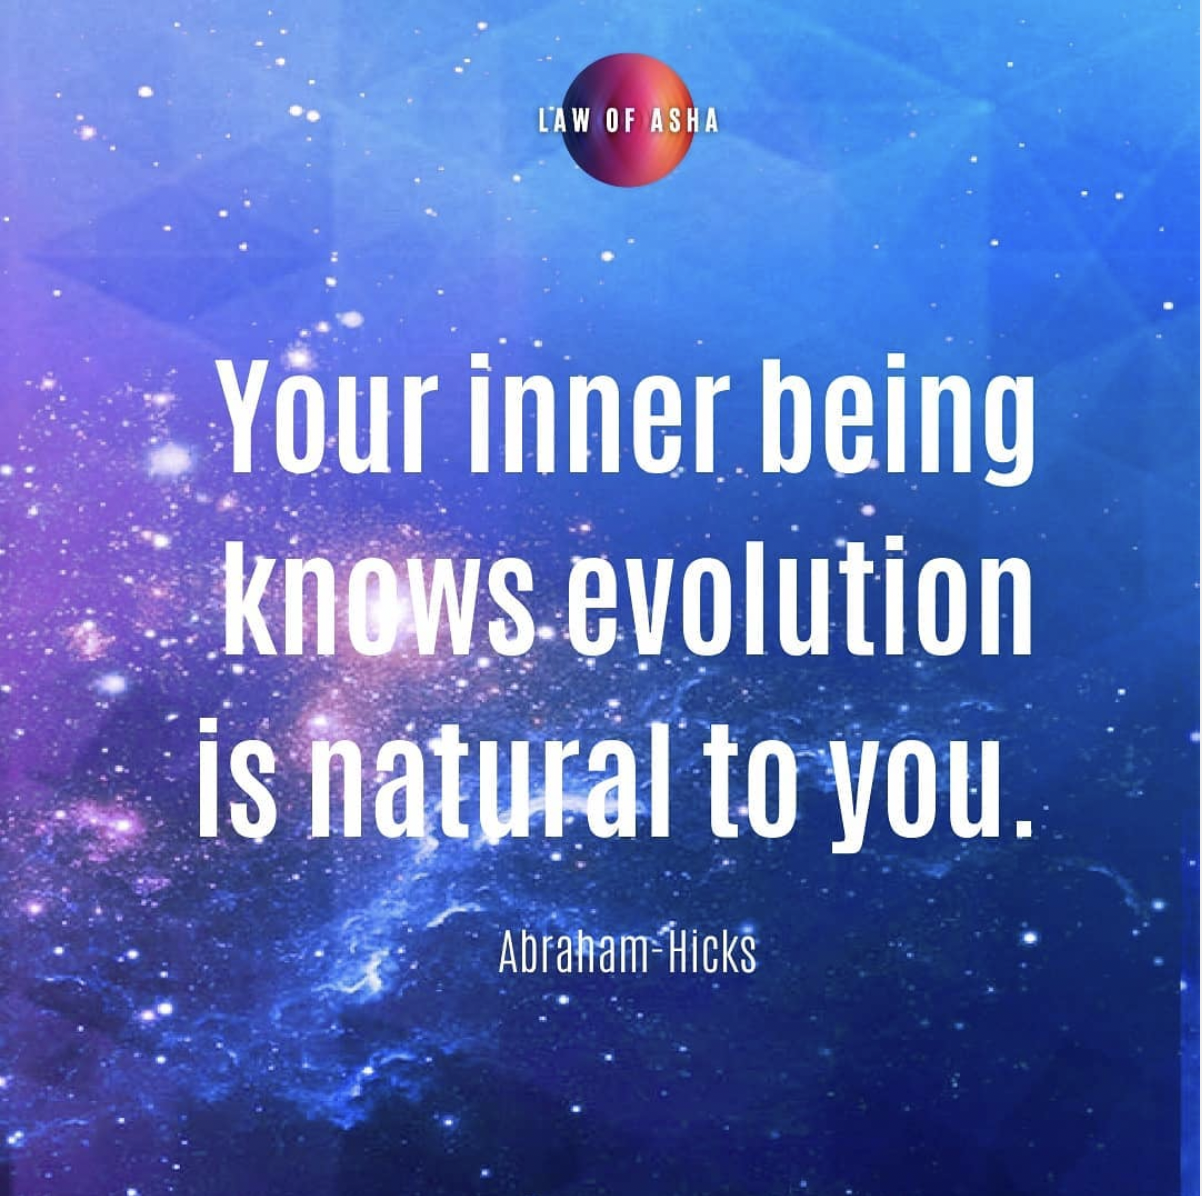 This is what is natural to all life…